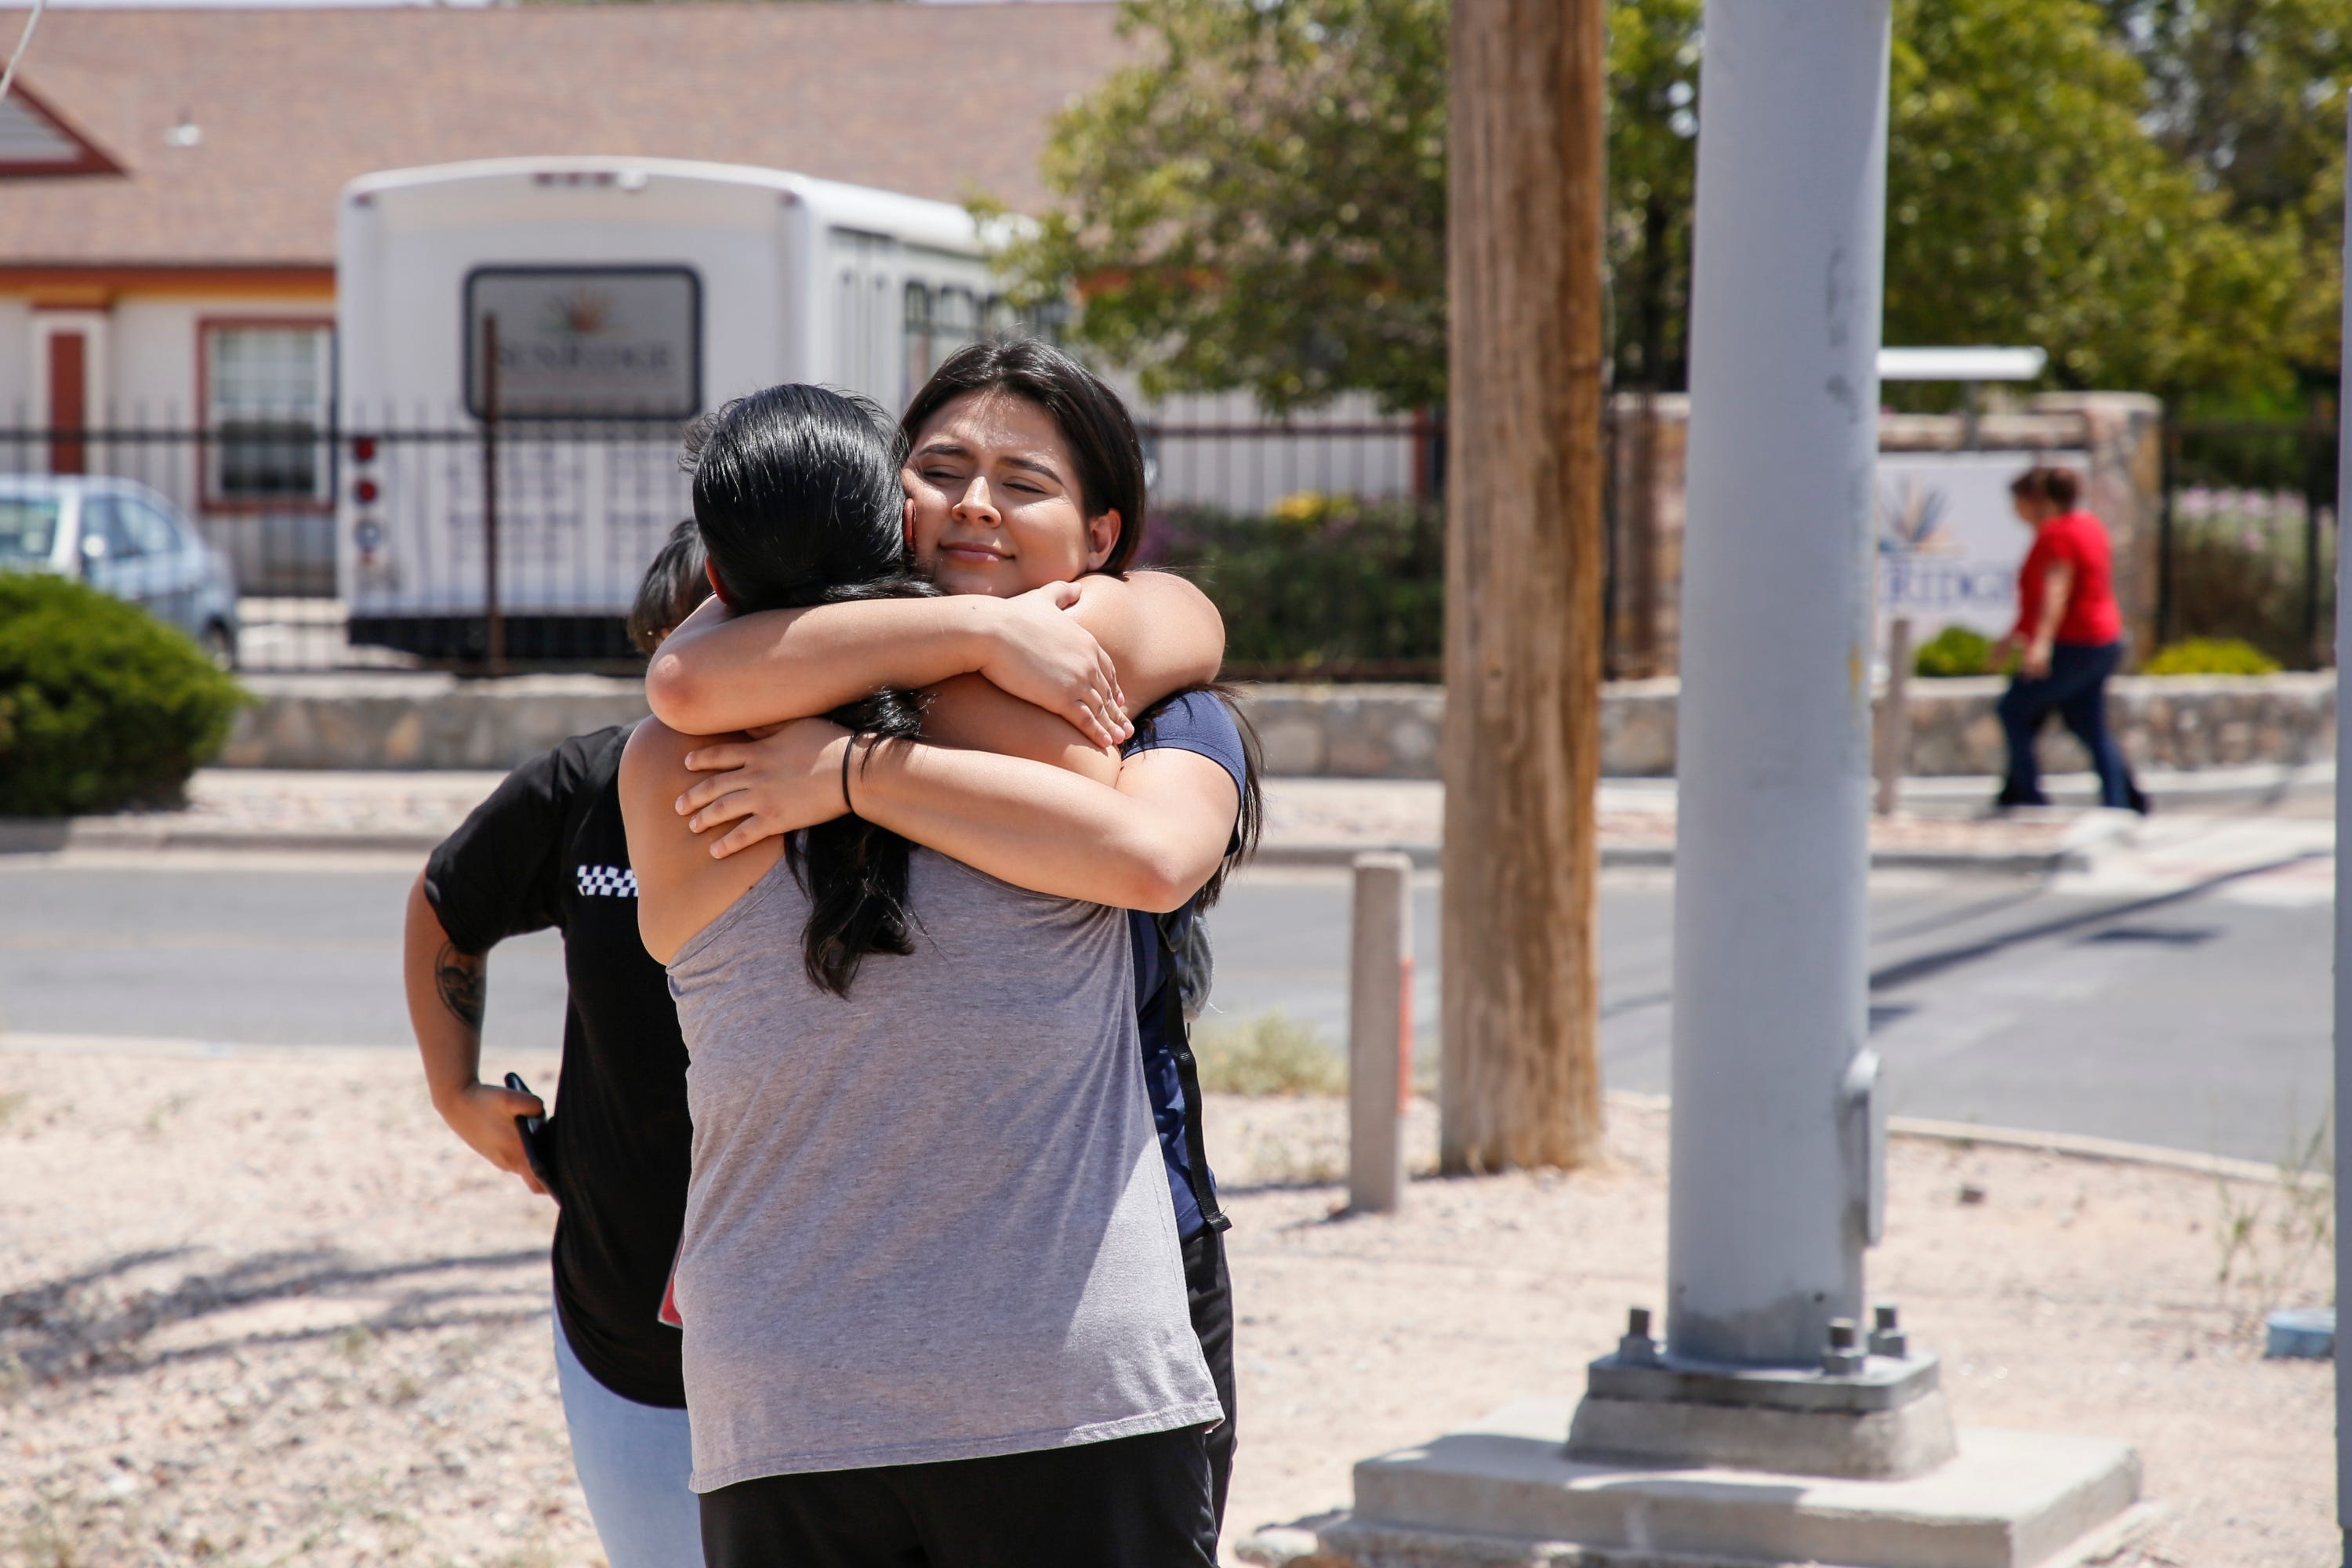 Tabitha Estrada, 19, hugs her mother Rebeca Rivas, 40, an hour after being trapped in a Walmart in El Paso during a mass shooting on Saturday, Aug. 3, 2019.